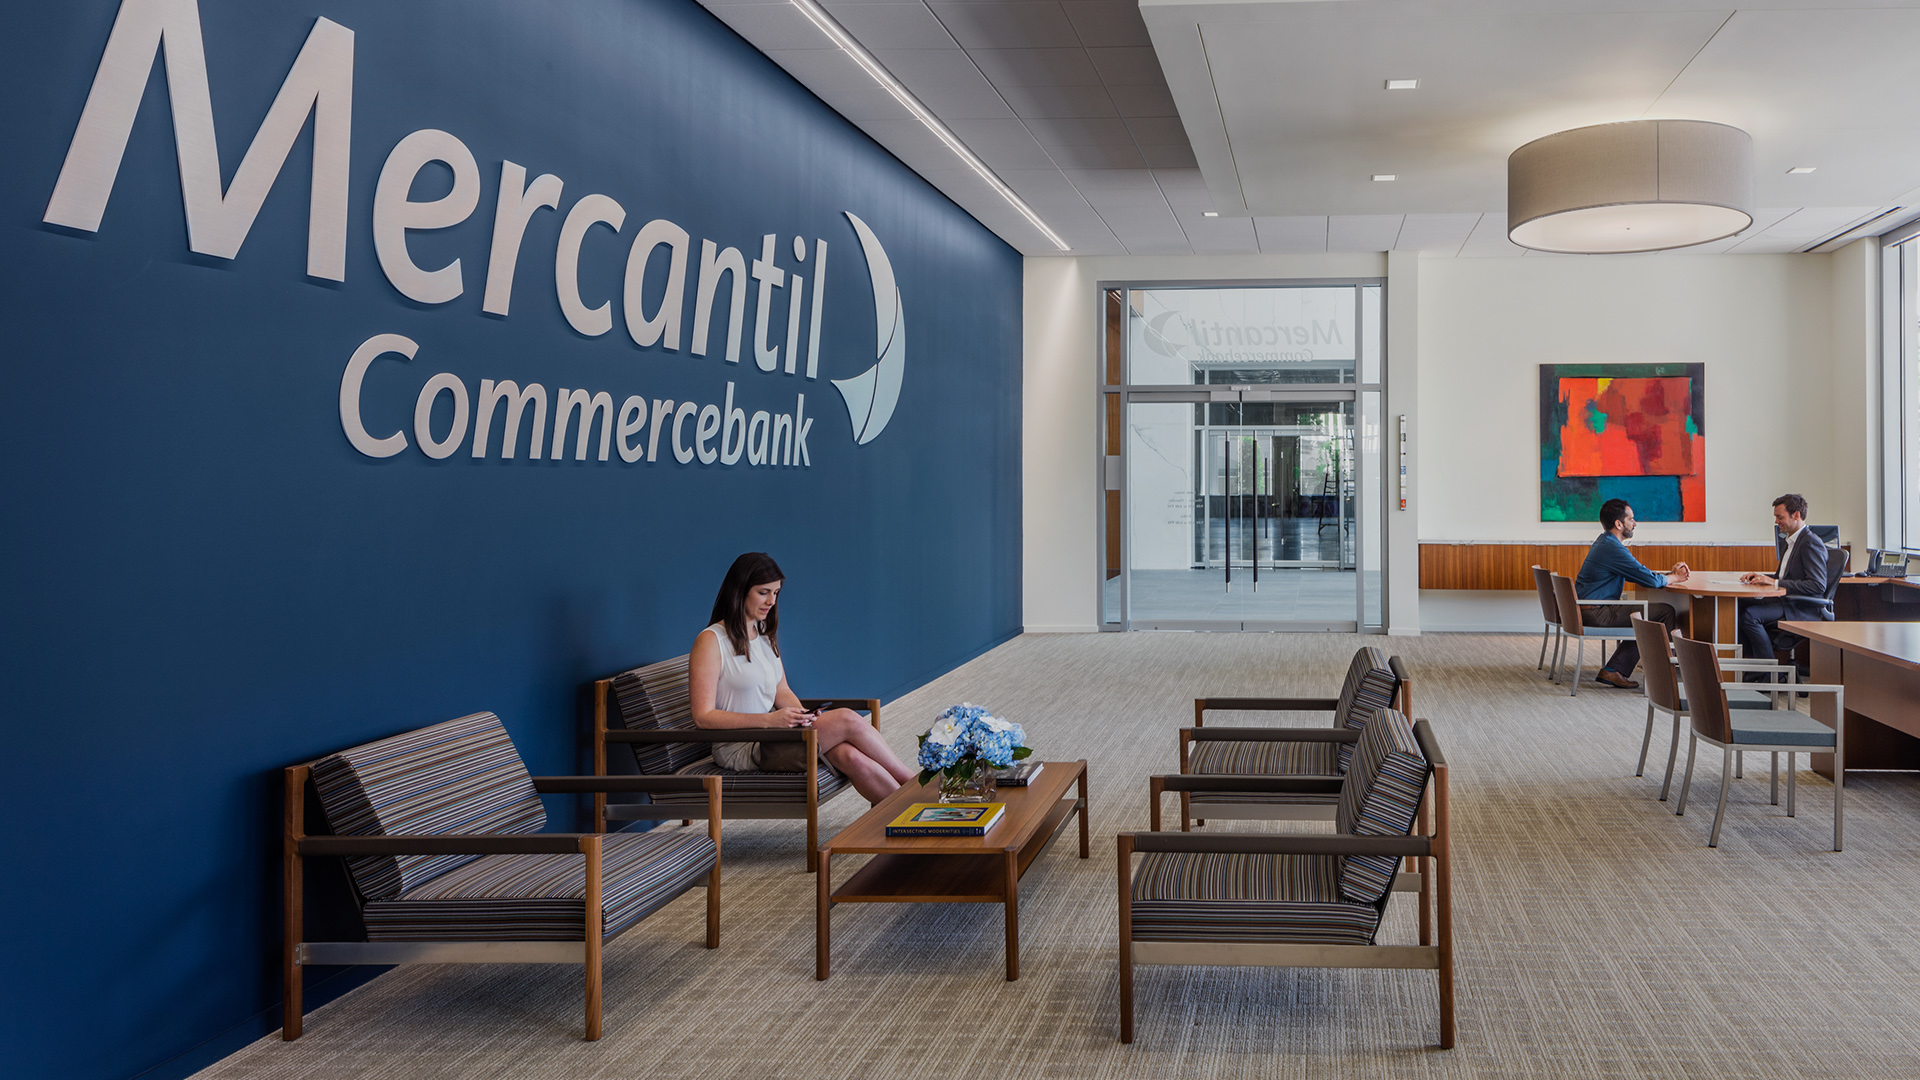 Financial Retail Interior Design Mercantil Commercebank Champions Louetta Consultation Meeting and Seating Area